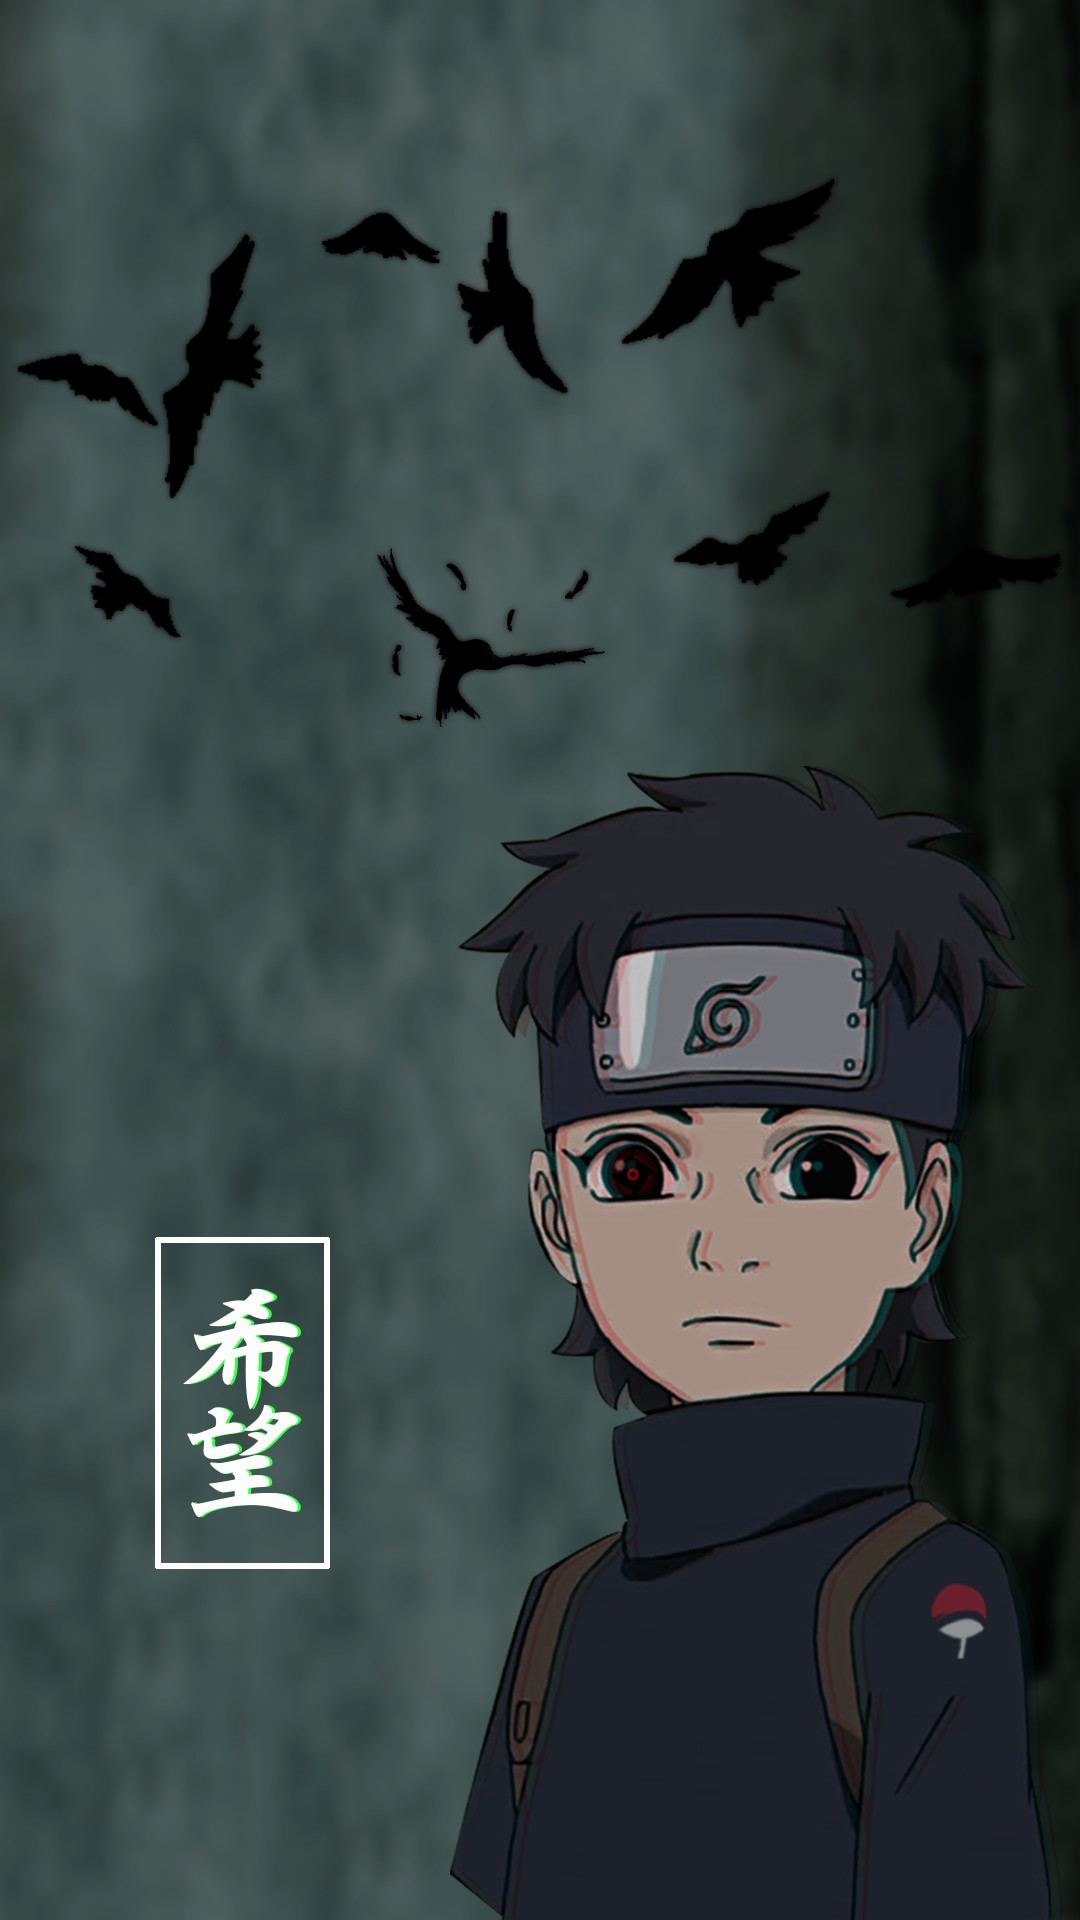 Took A While But Here S A Shisui Wallpaper Naruto Shippuden Anime